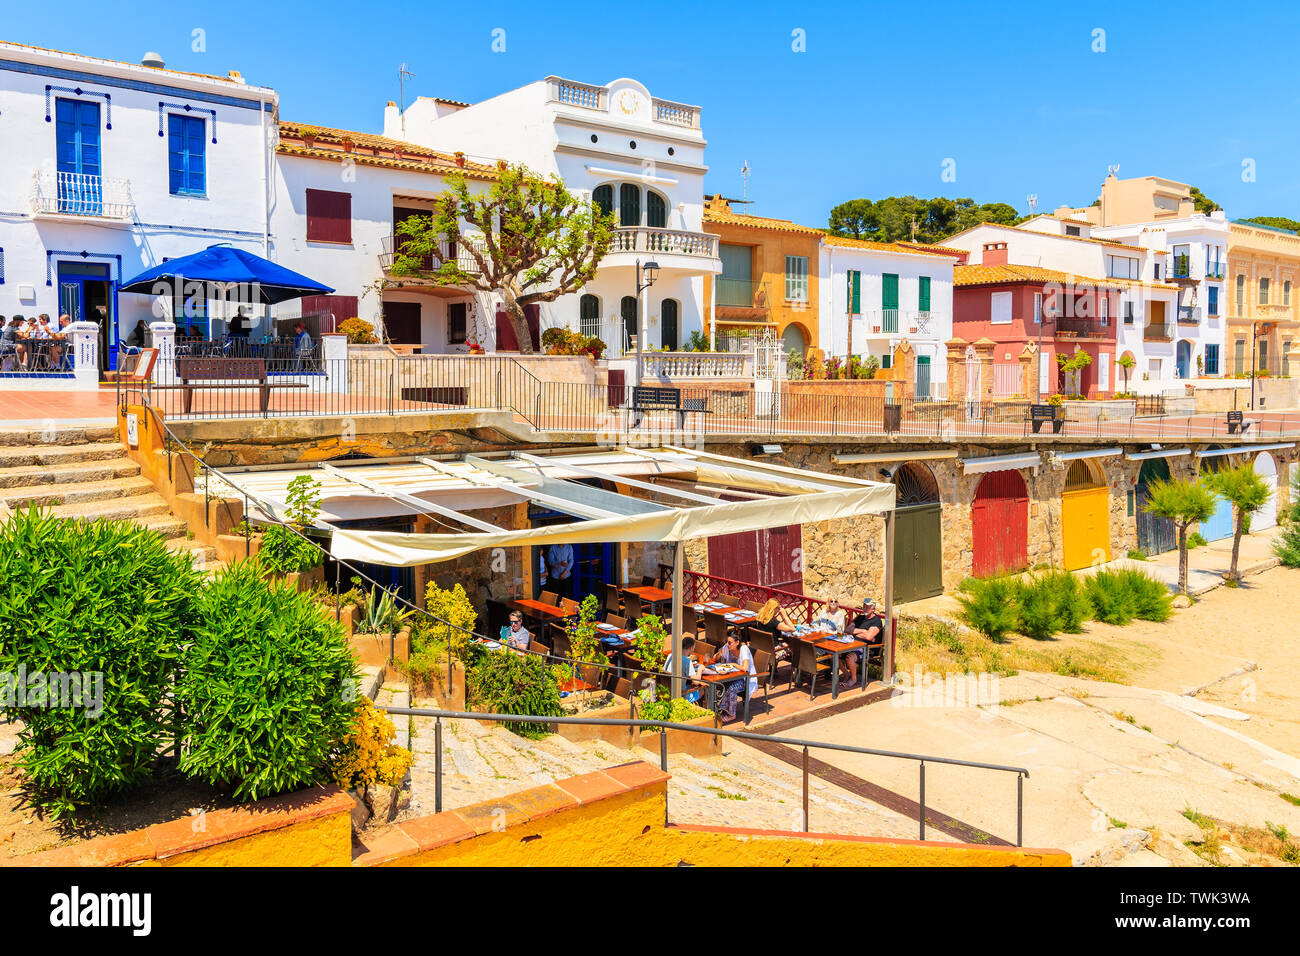 CALELLA DE PALAFRUGELL, SPAIN - JUN 6, 2019: Restaurant on Canadell beach with colorful houses in backgrounf in Calella de Palafrugell village, Costa Stock Photo